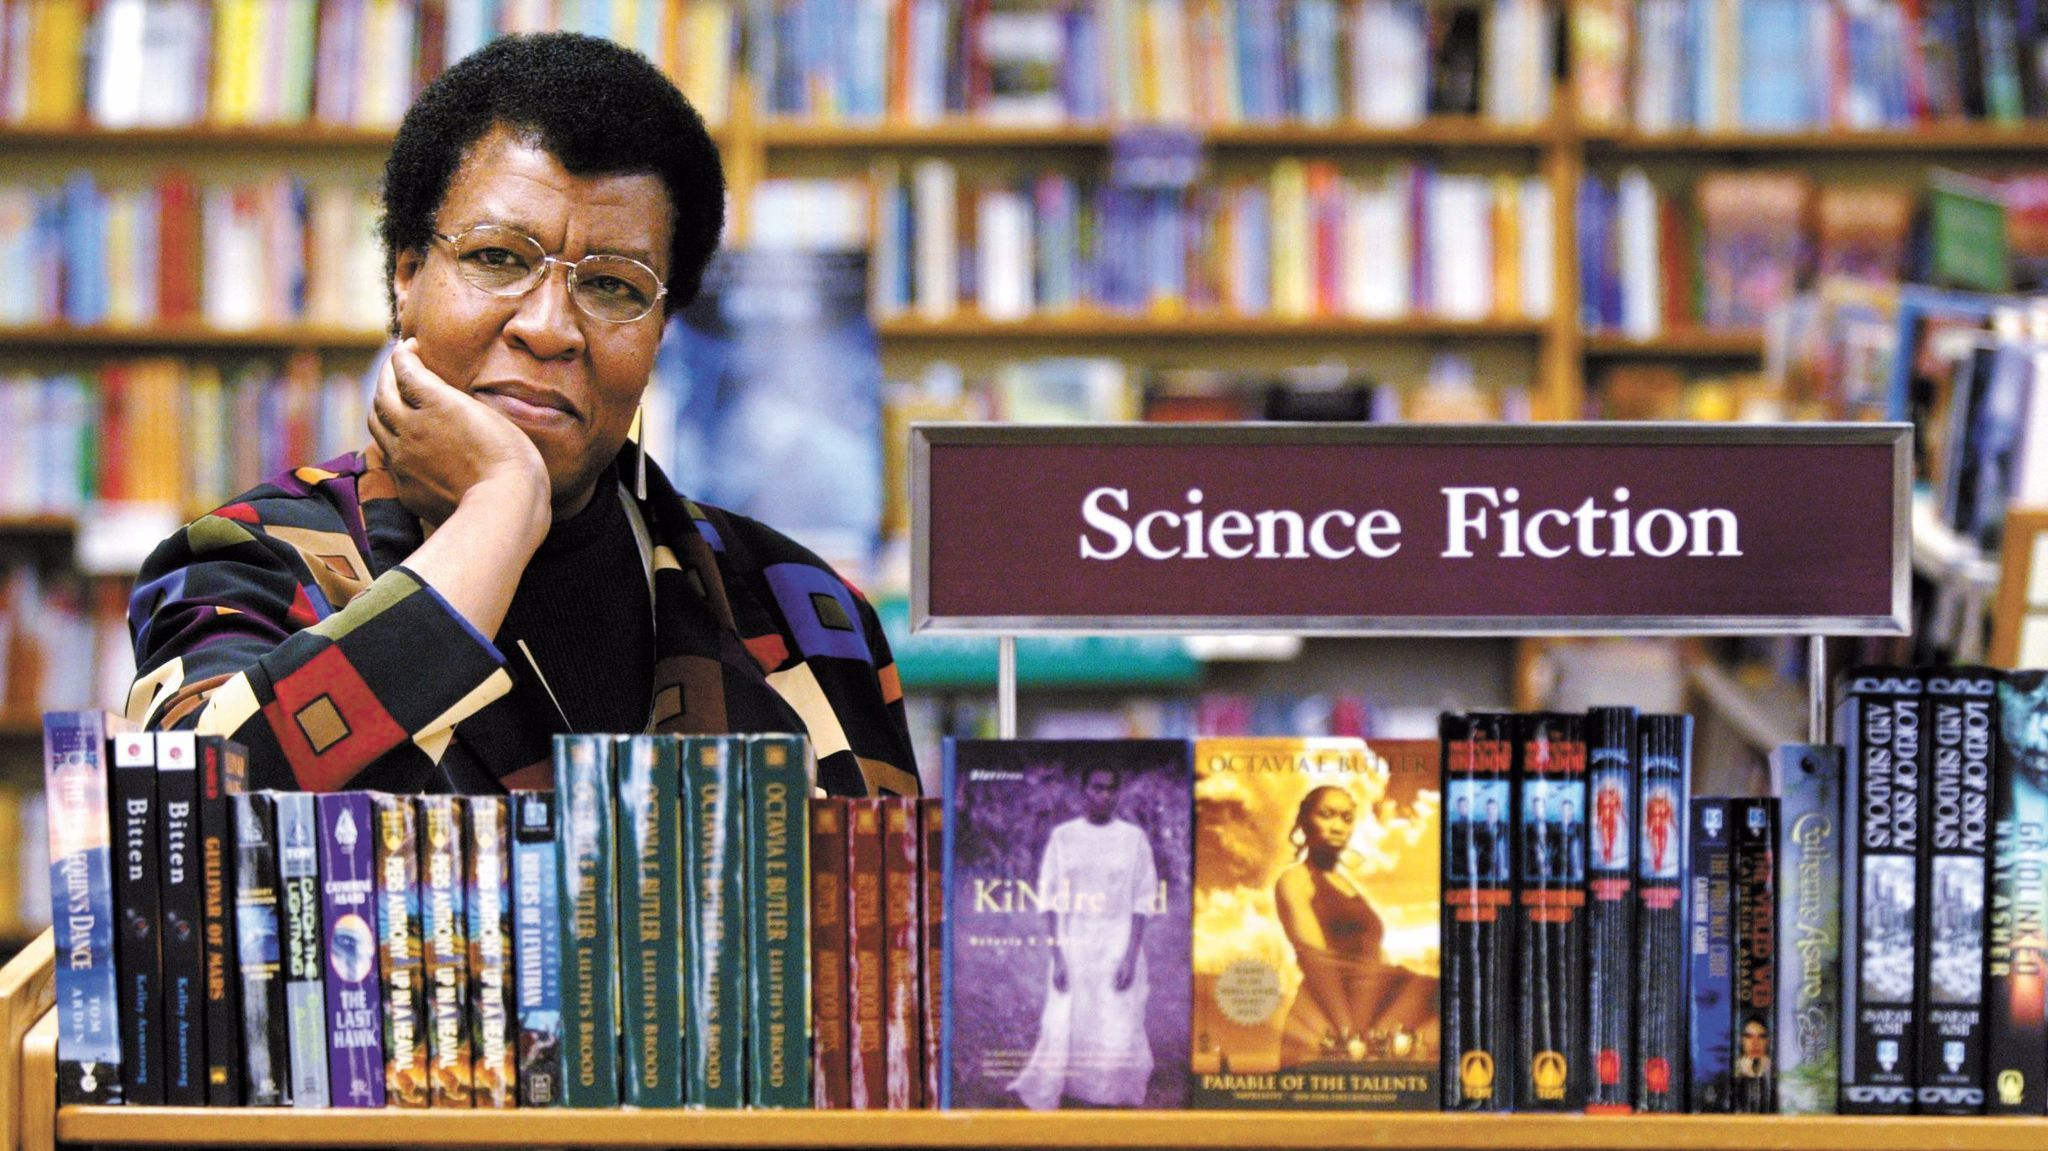 Octavia Butler Writer Photo Courtesy http://www.trbimg.com/img-5912ac85/turbine/la-1494396033-a3umy5cuis-snap-image